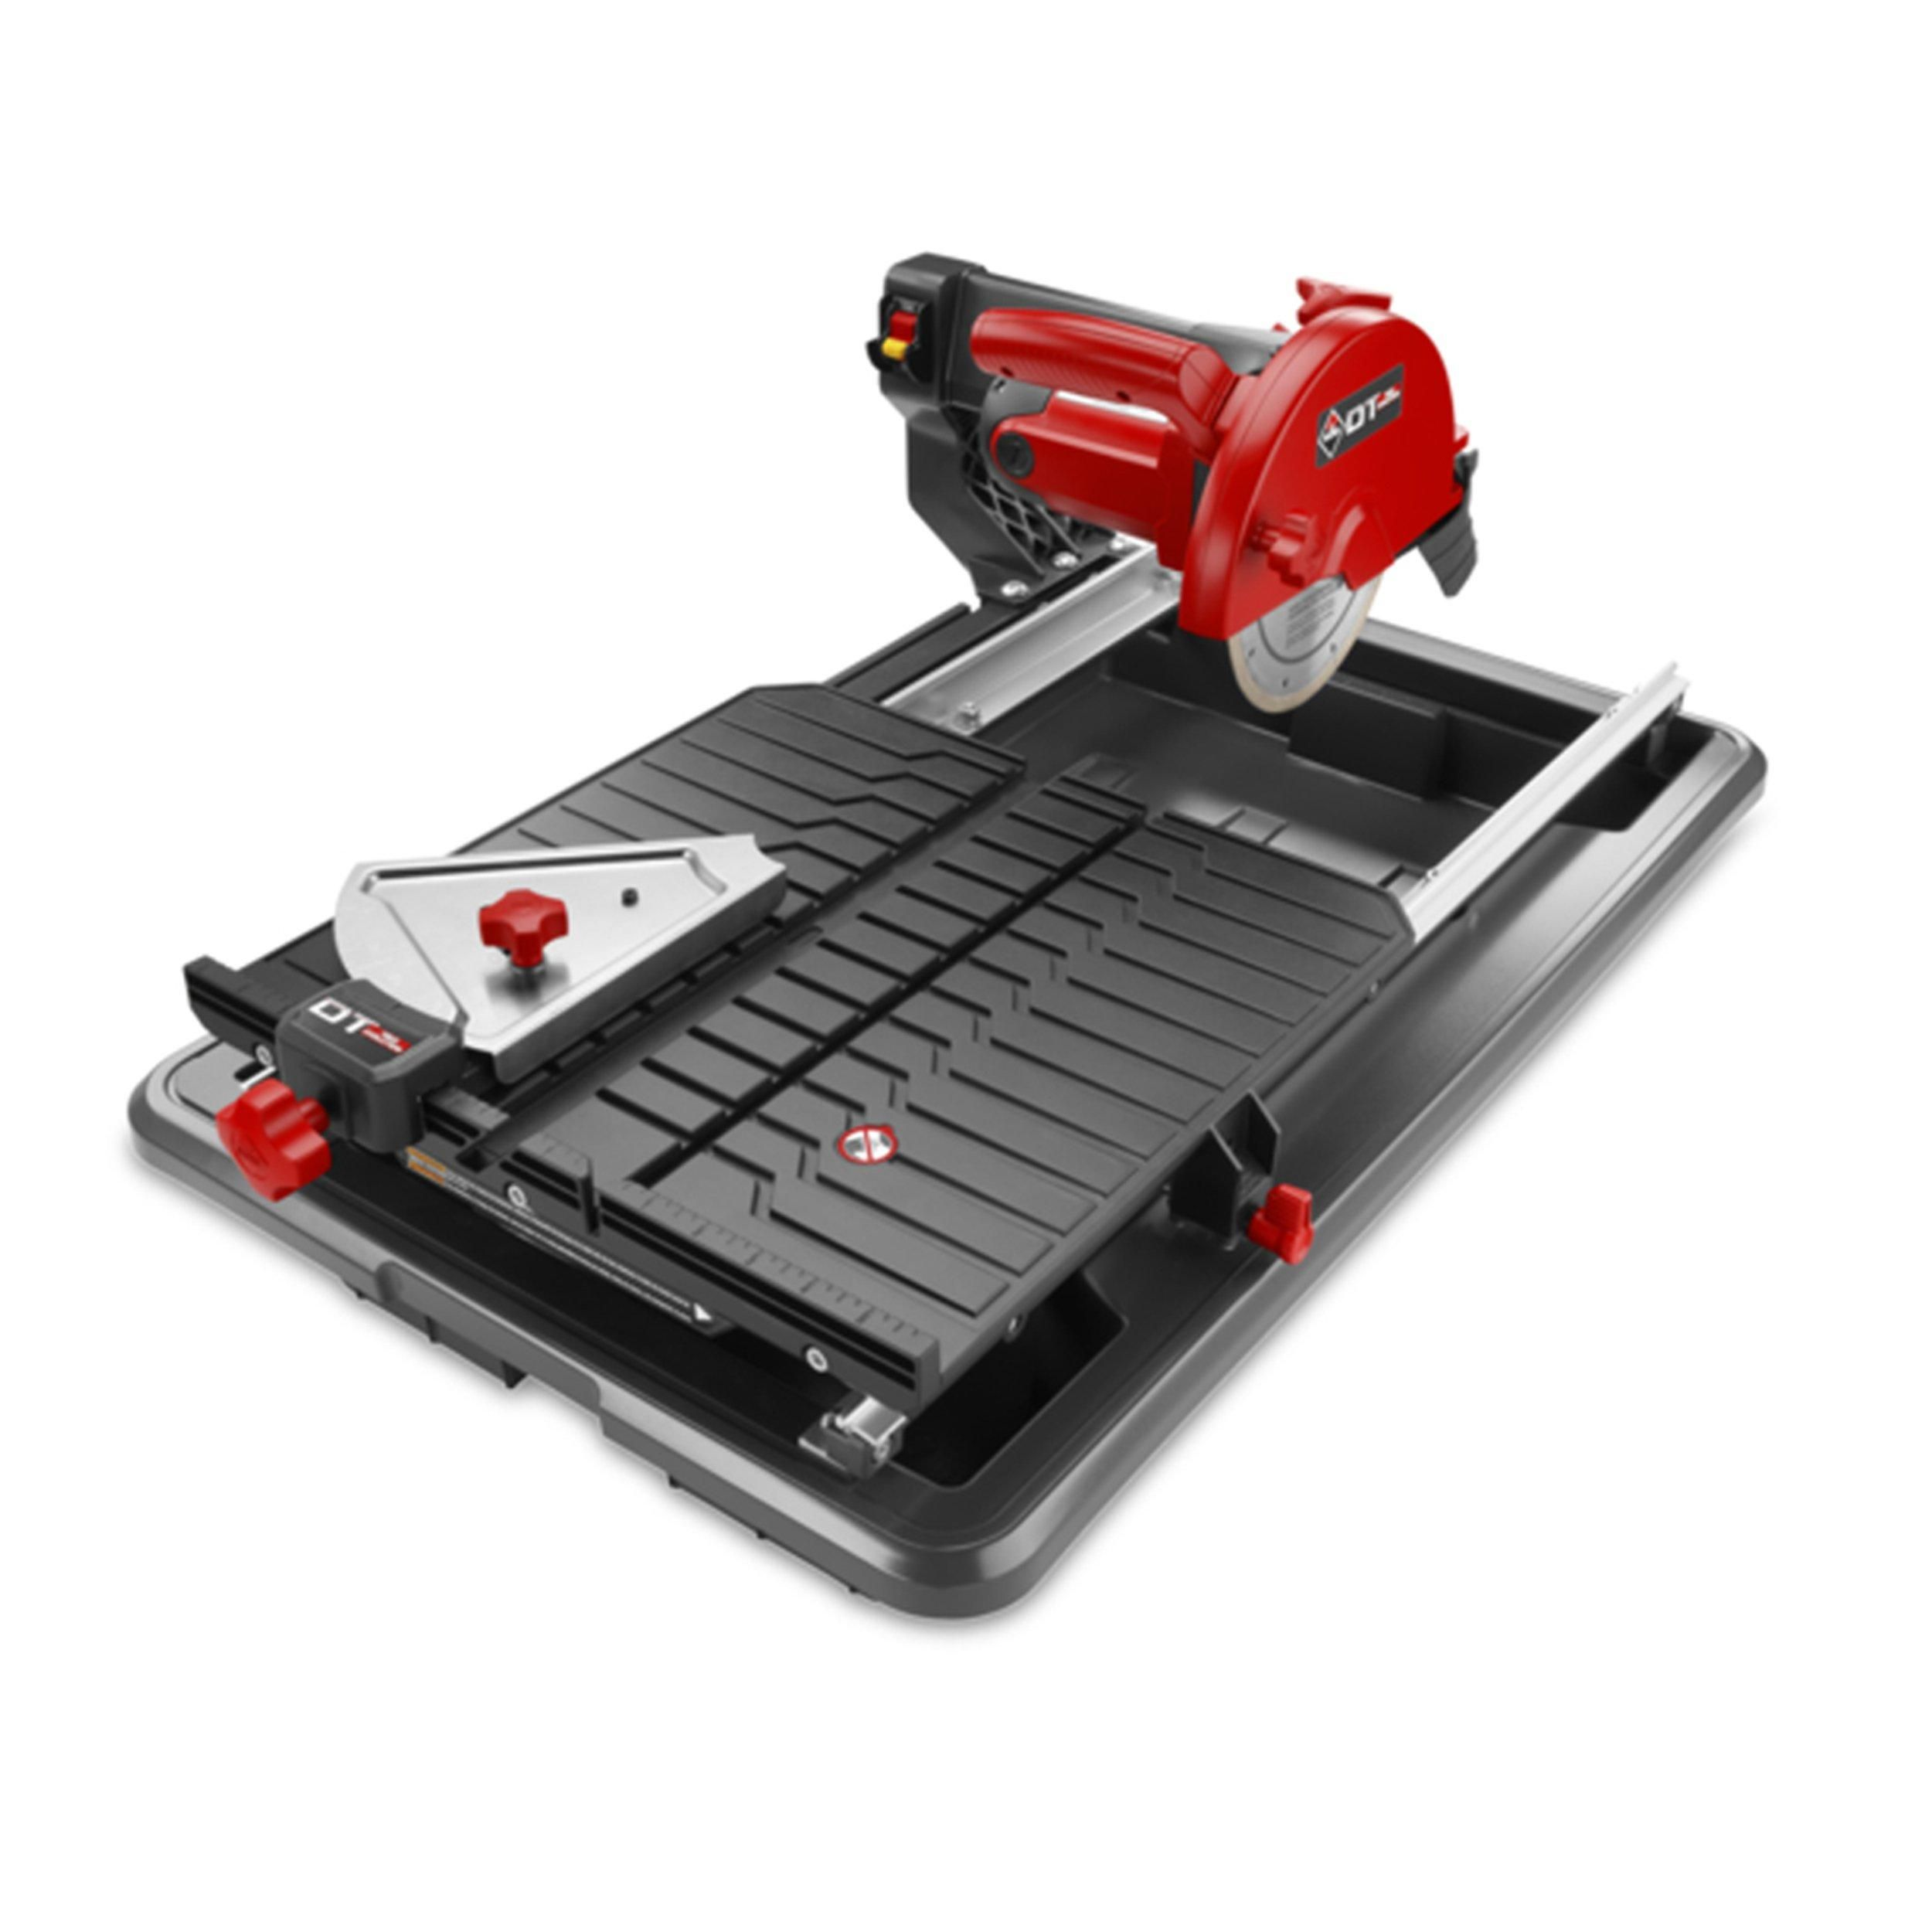 Rubi Dt 180 Evolution 7 Inch Wet Tile Saw Floor Decor In 2020 Home Made Table Saw Tile Saw Diy Table Saw